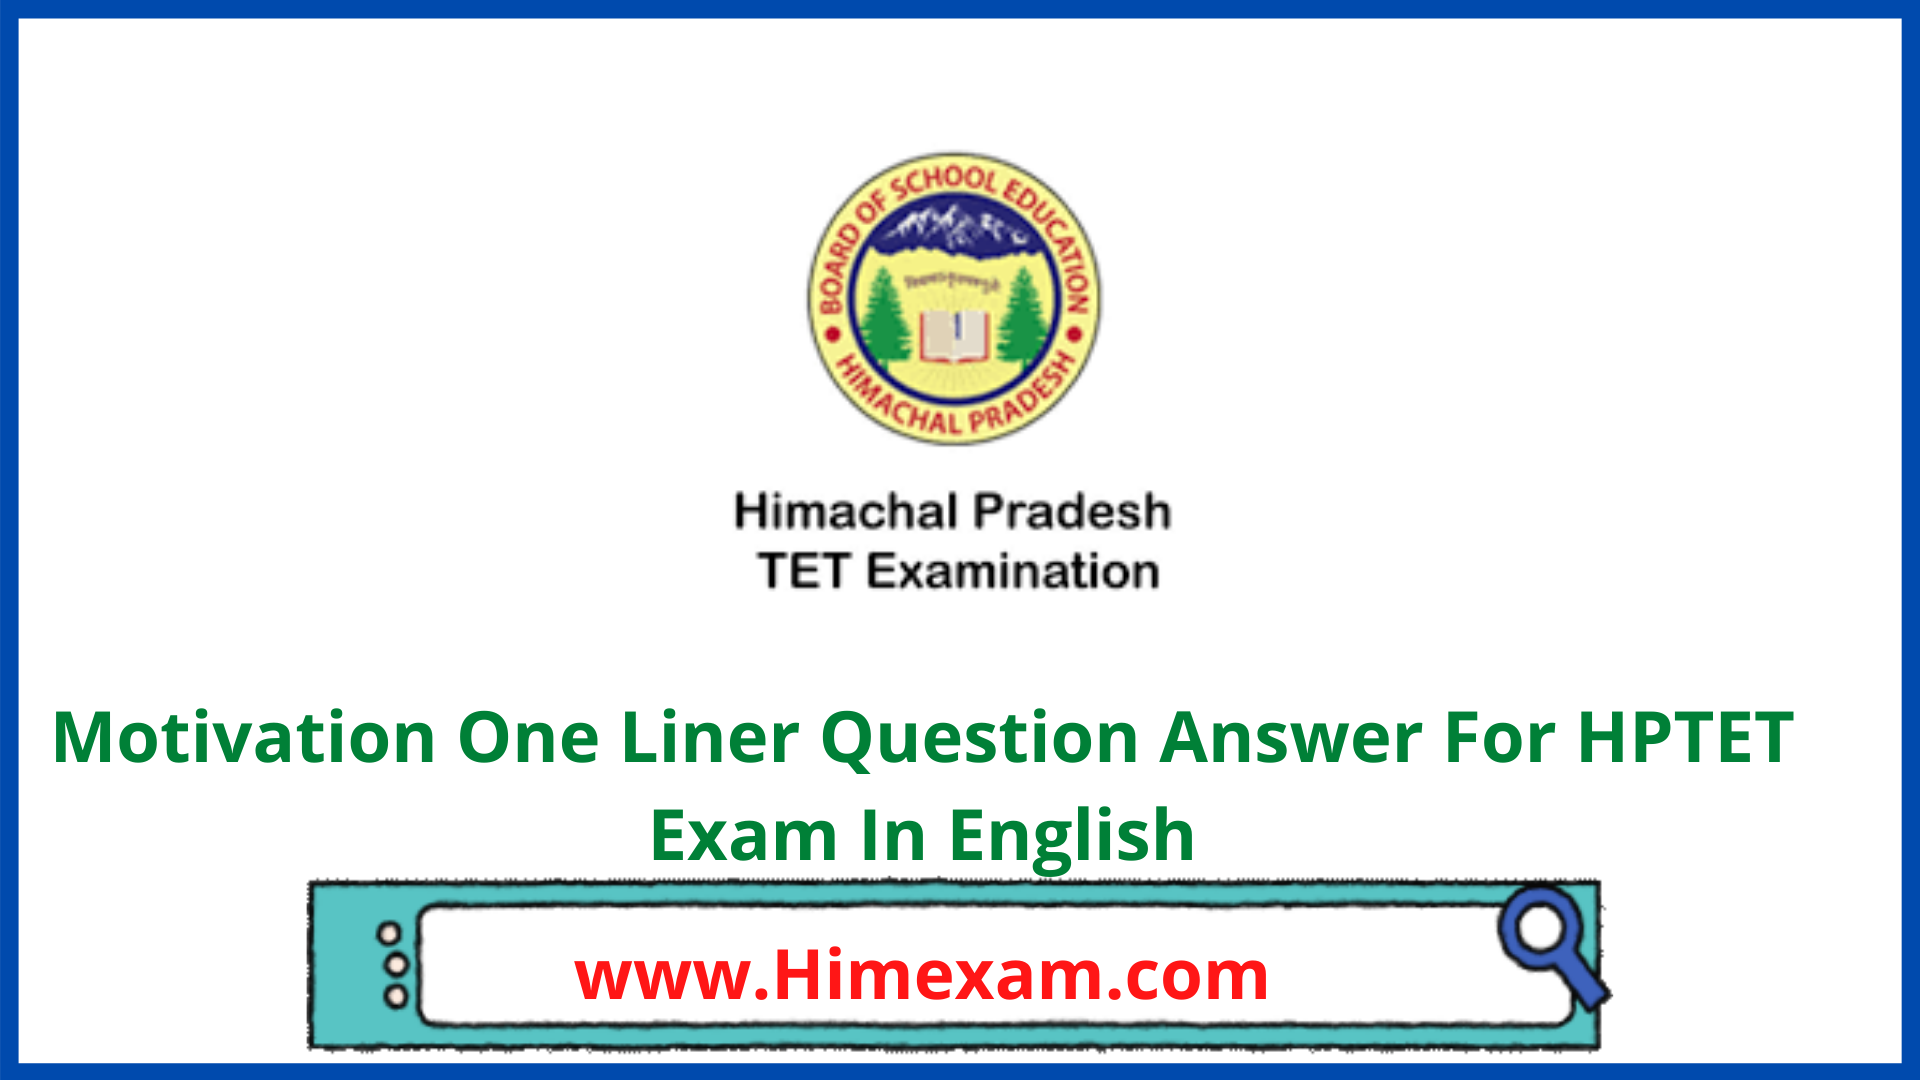 Motivation One Liner Question Answer For HPTET Exam In English